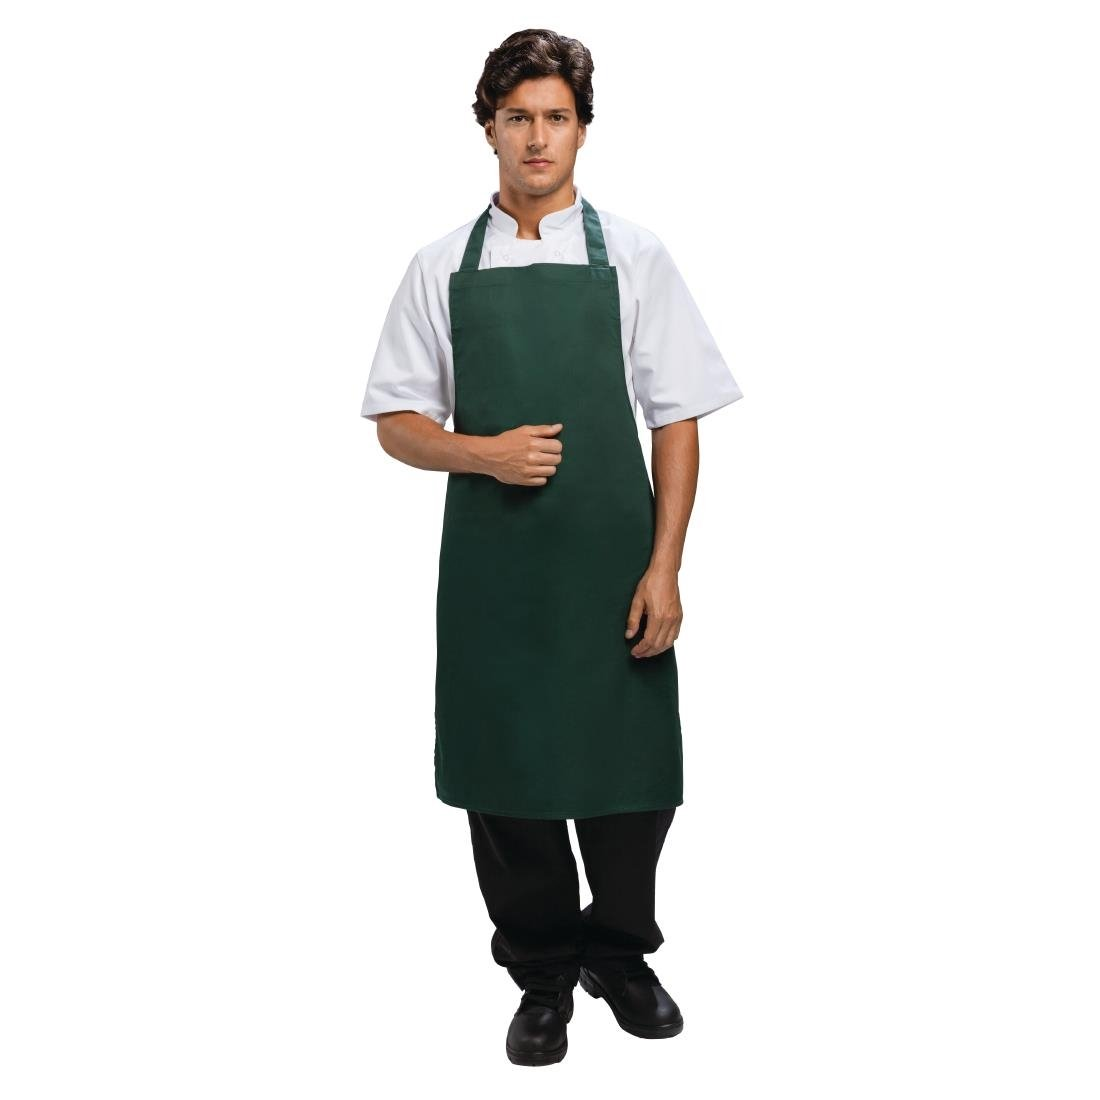 Bib Apron Polycotton Green